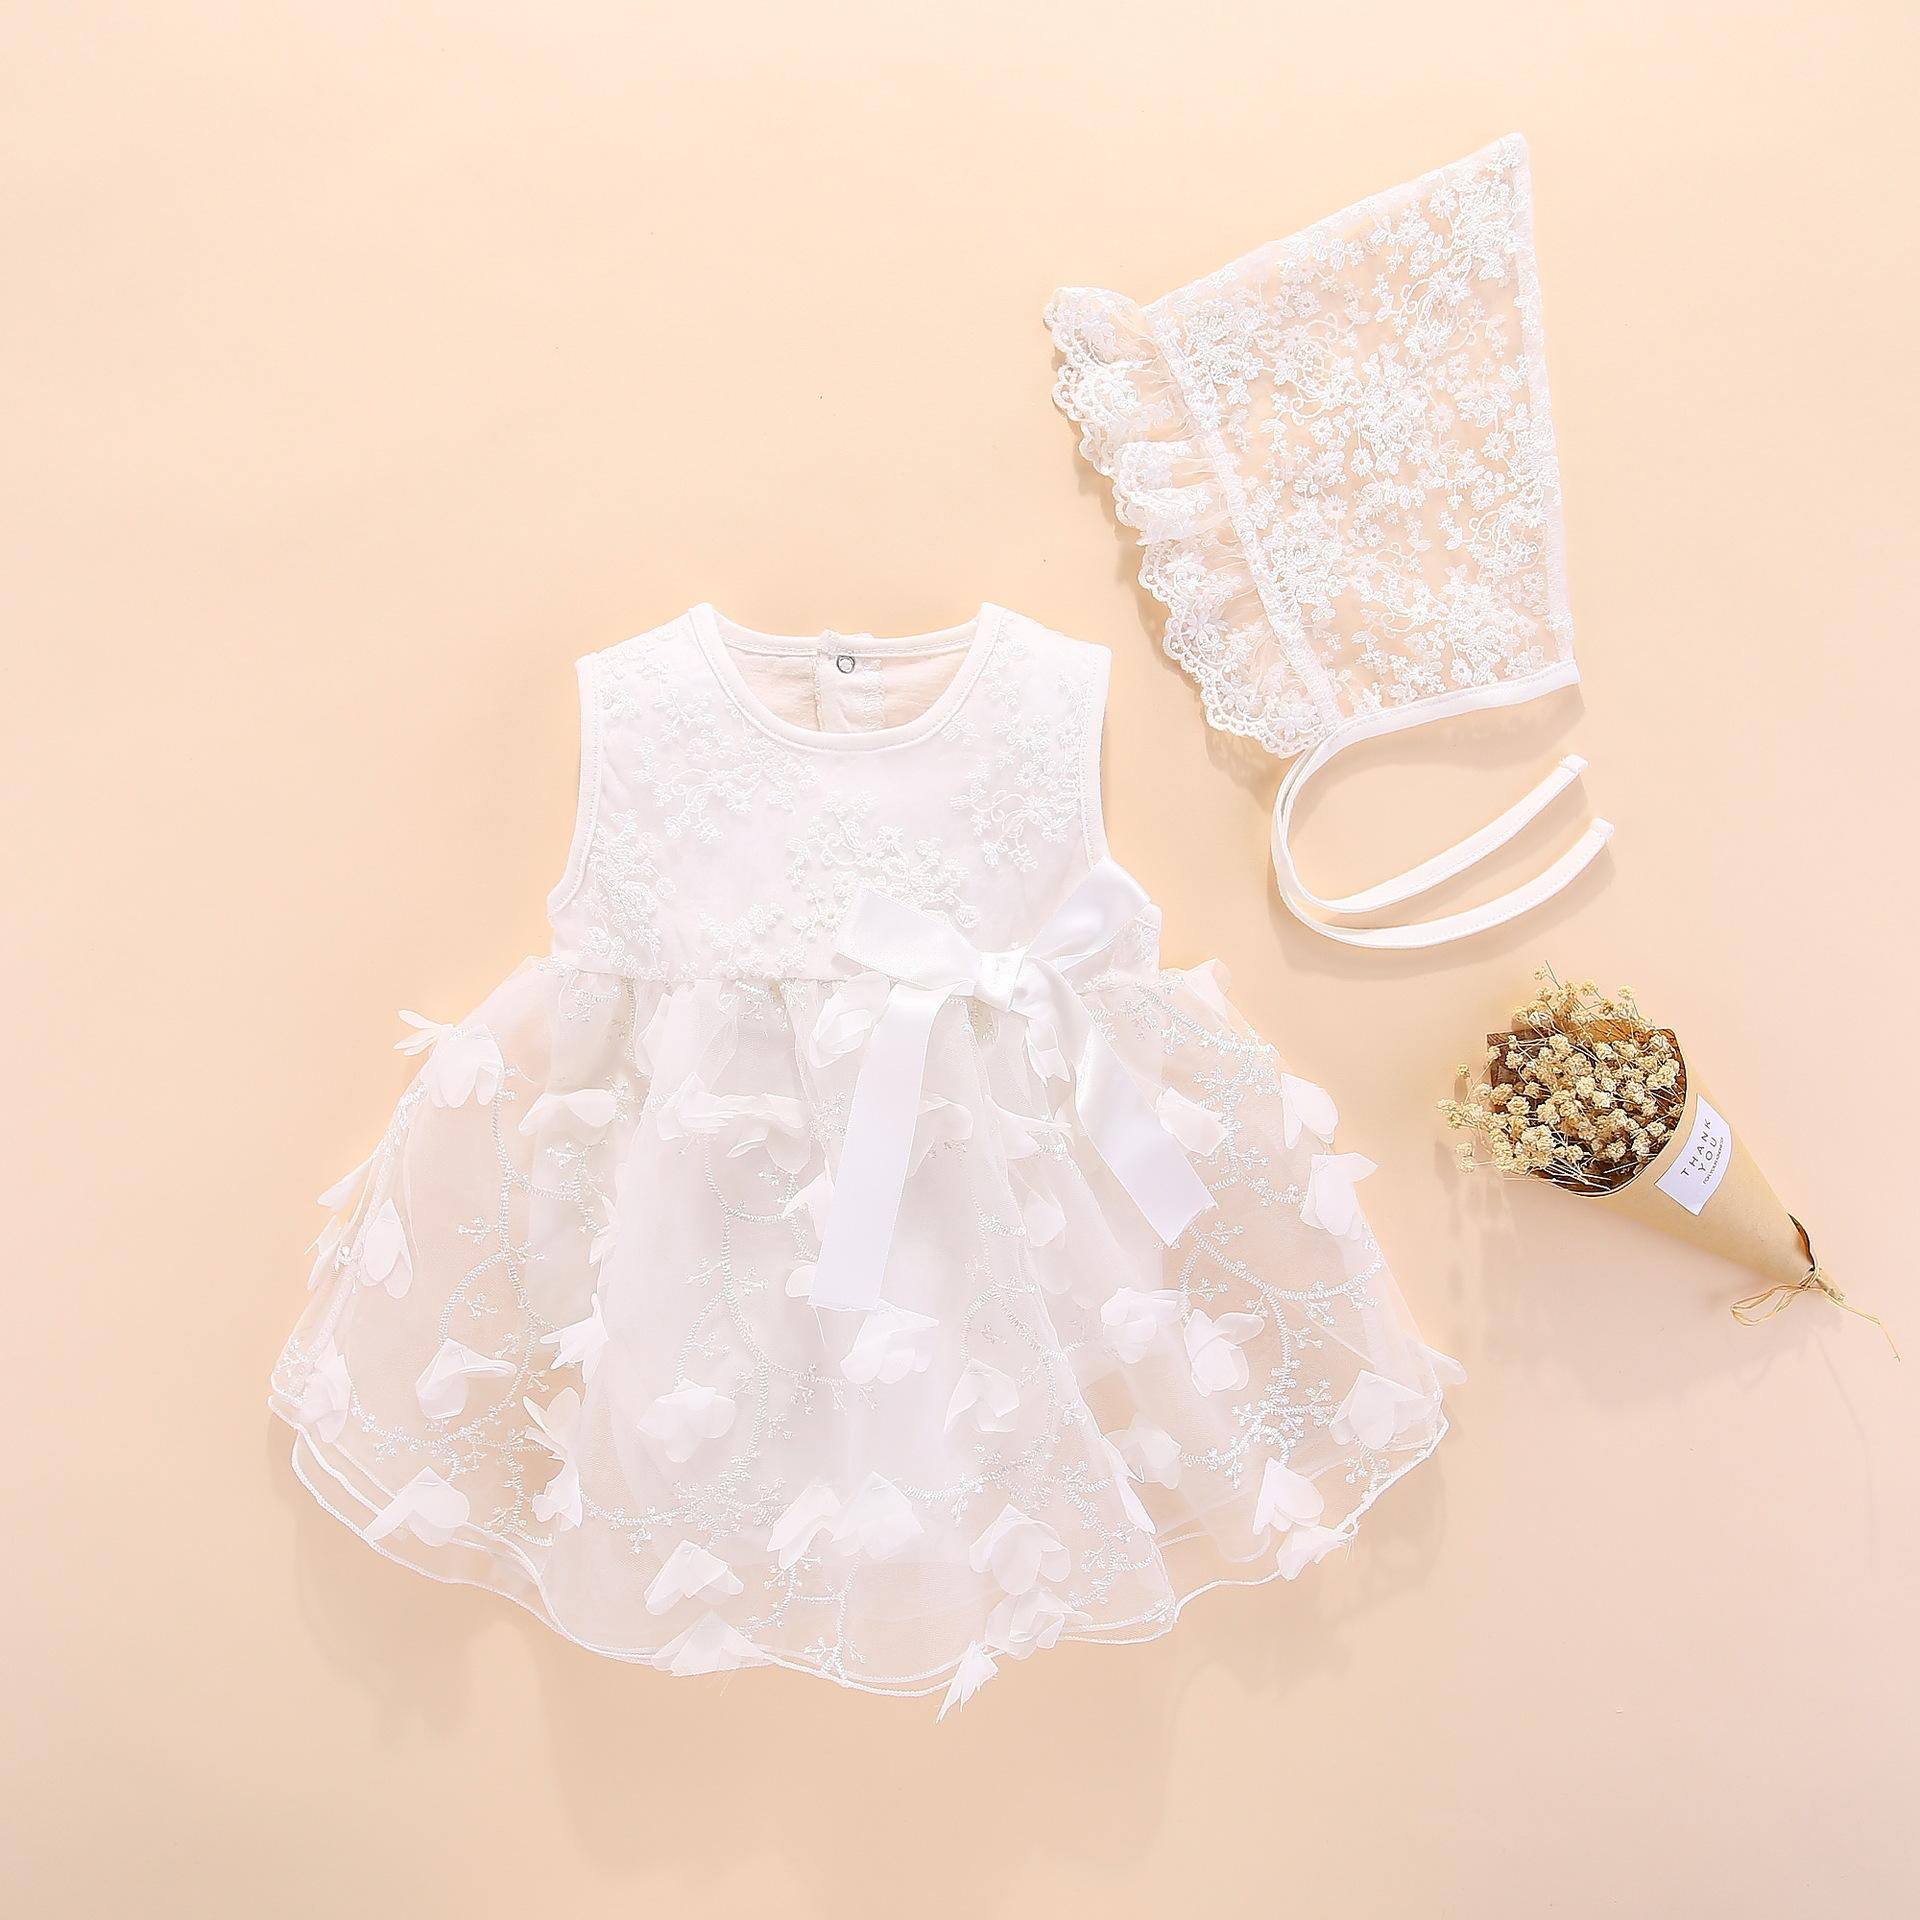 cc821b7f54d01 Newborn Baby Girl Dresses Clothes Summer With Flower 0 3 6 Month Baby Girl  Dress For Party And Wedding Princess Style Clothes J190506